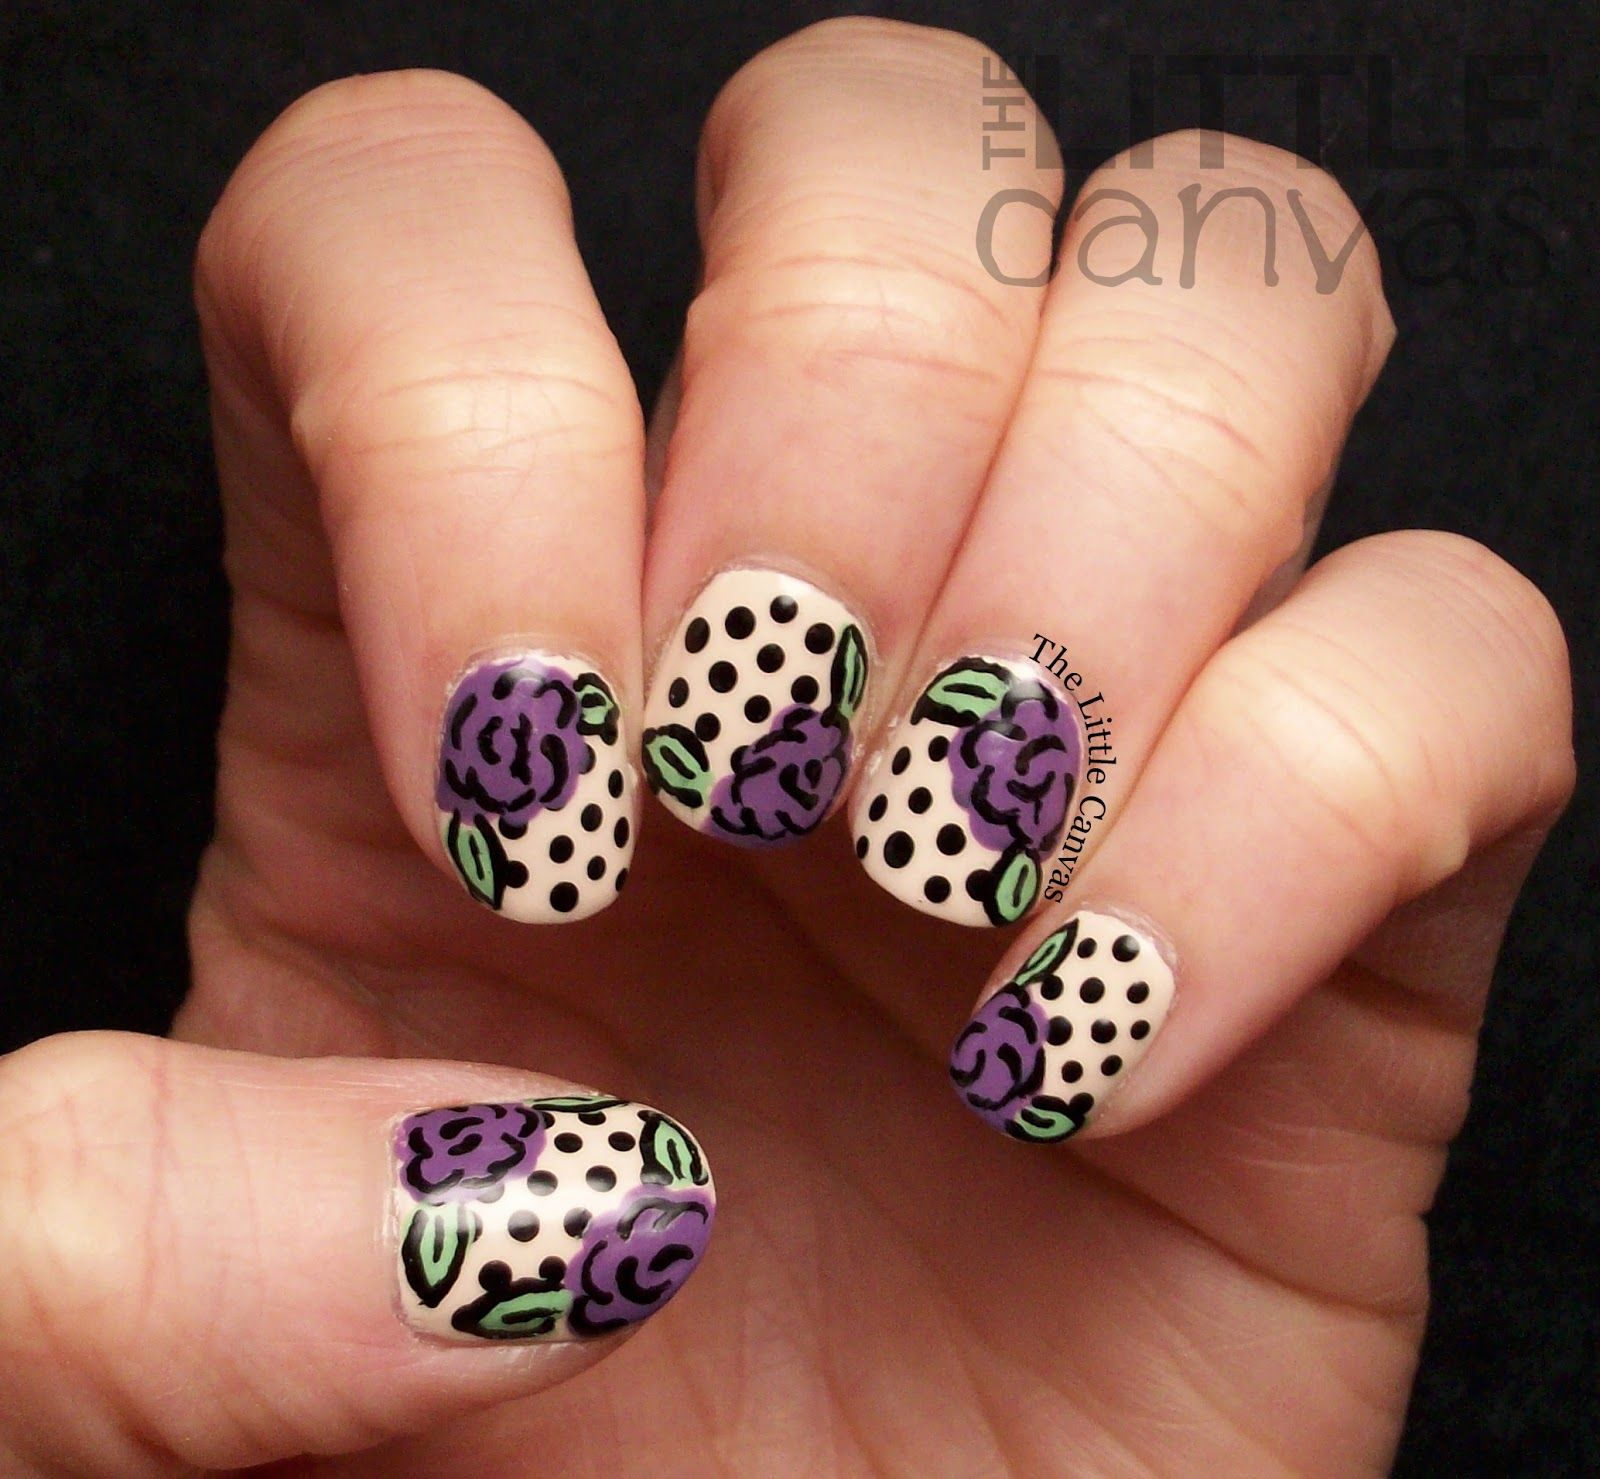 The Little Canvas #nail #nails #nailart